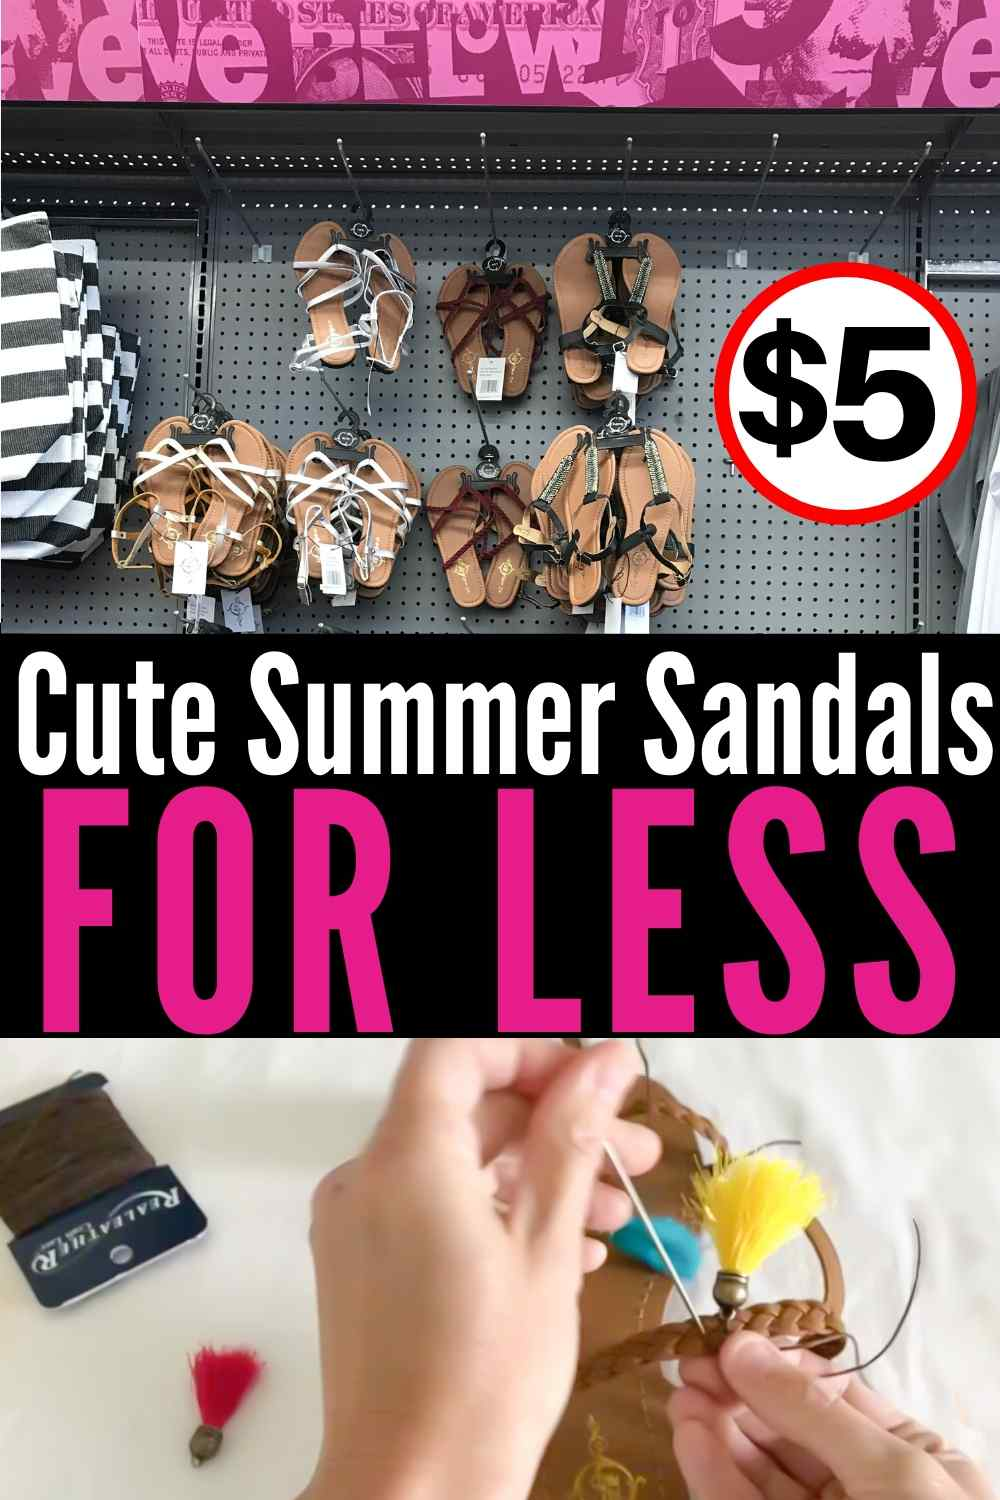 Cute Summer Sandals For Less!